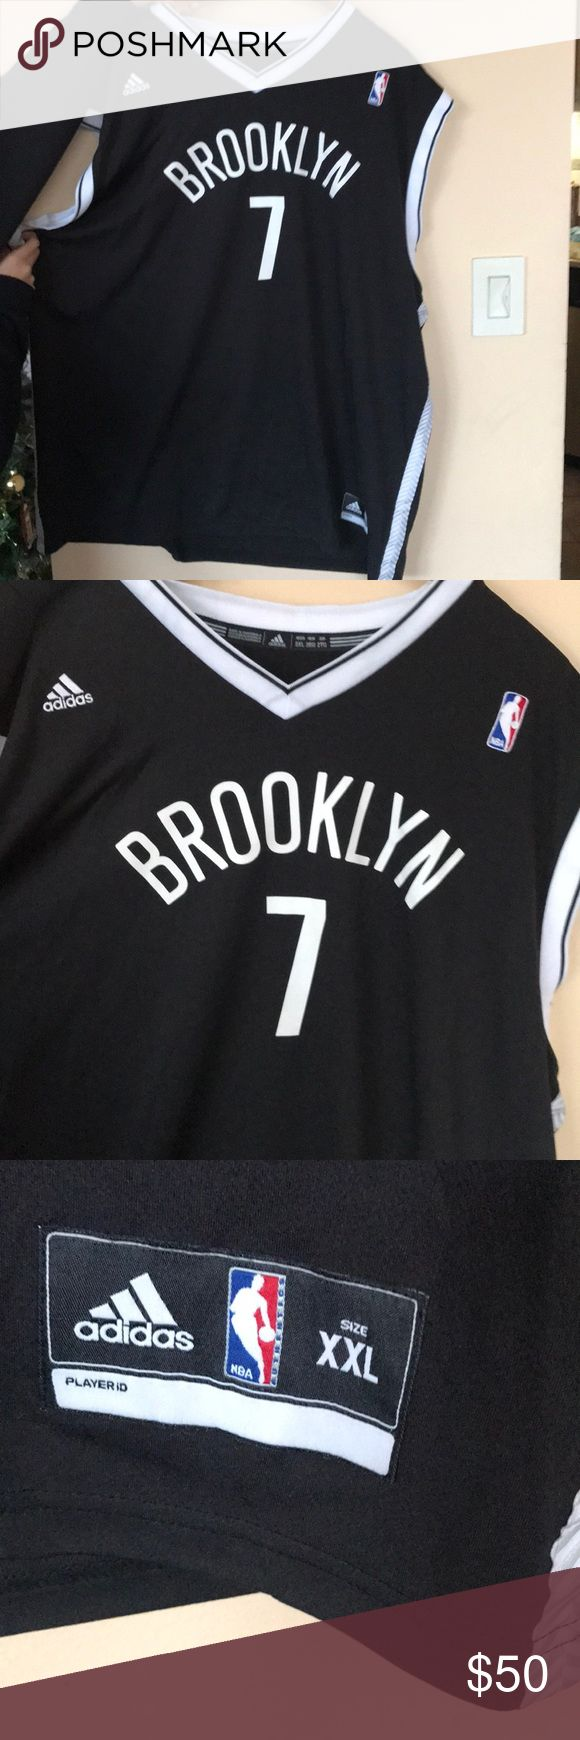 Men's Brooklyn Nets Lin adidas Black Jersey 2XL Material: 100% Polyester Jock tag Back neck taping – no irritating stitch on the back neck Dazzle and mesh jersey Screen print name, numbers & logos Embroidered NBA & adidas logos Rib-knit collar & arm holes Machine wash, tumble dry low Imported Brand: adidas adidas Other